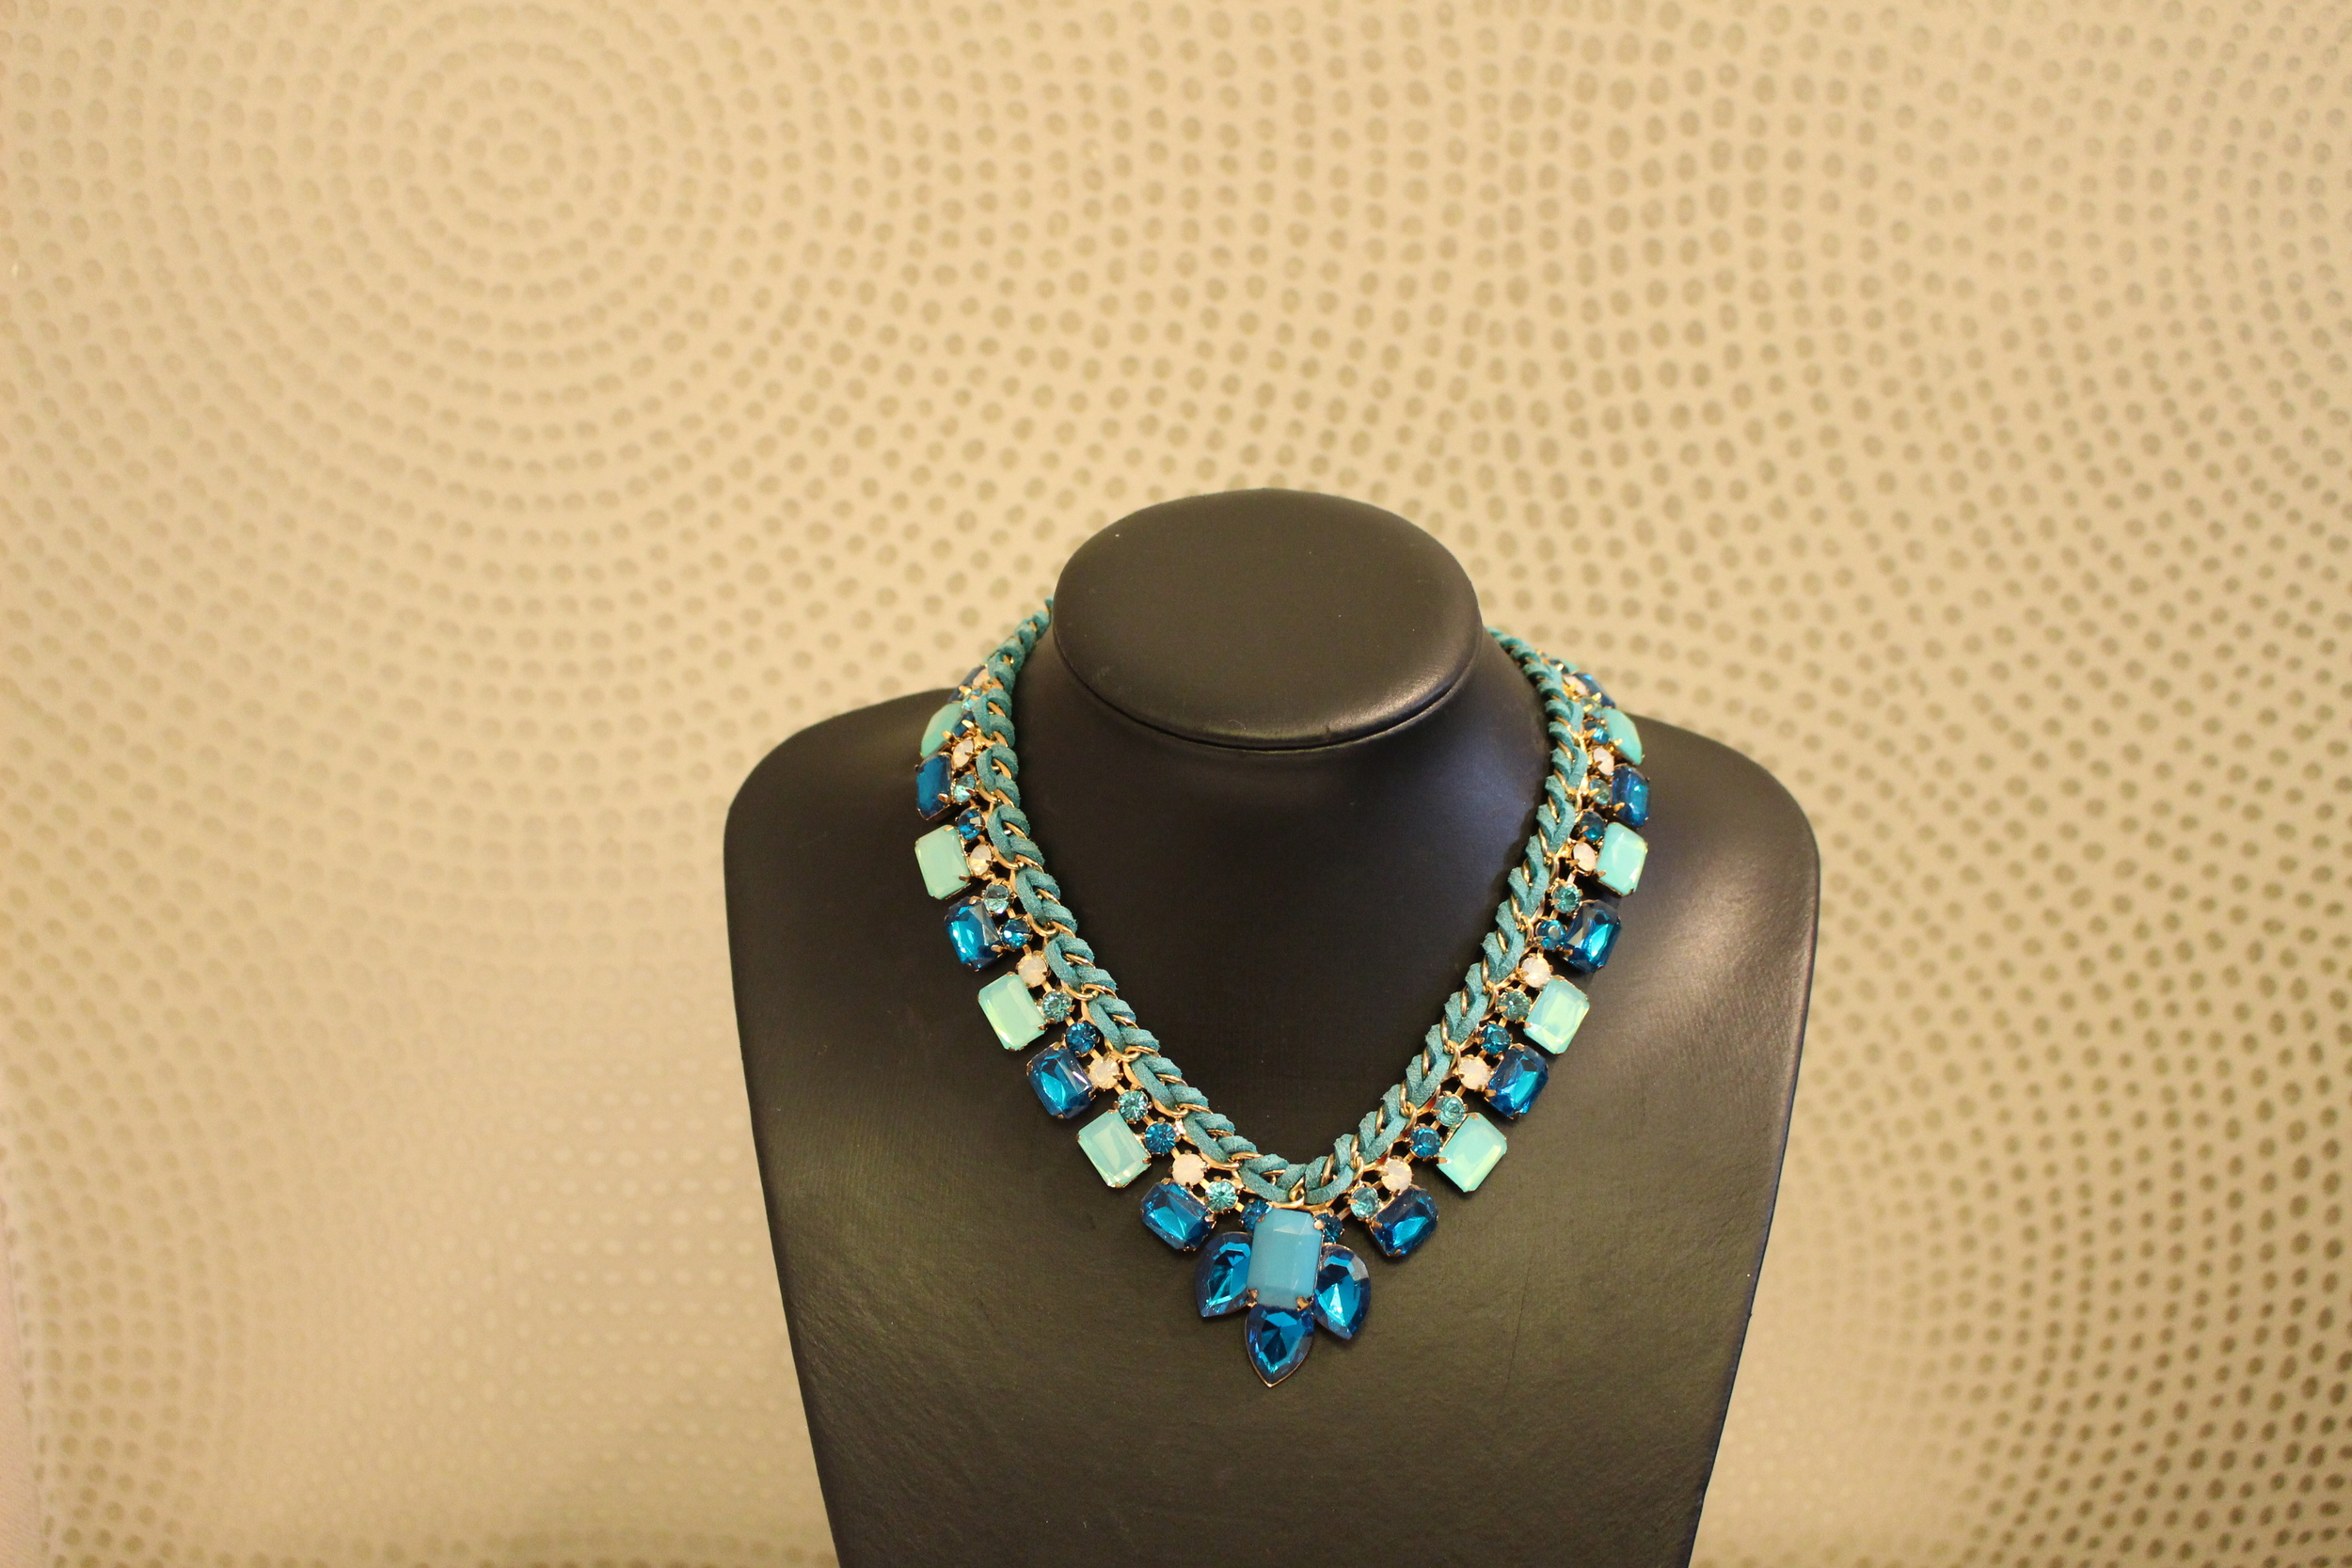 blue necklace tracy j accra